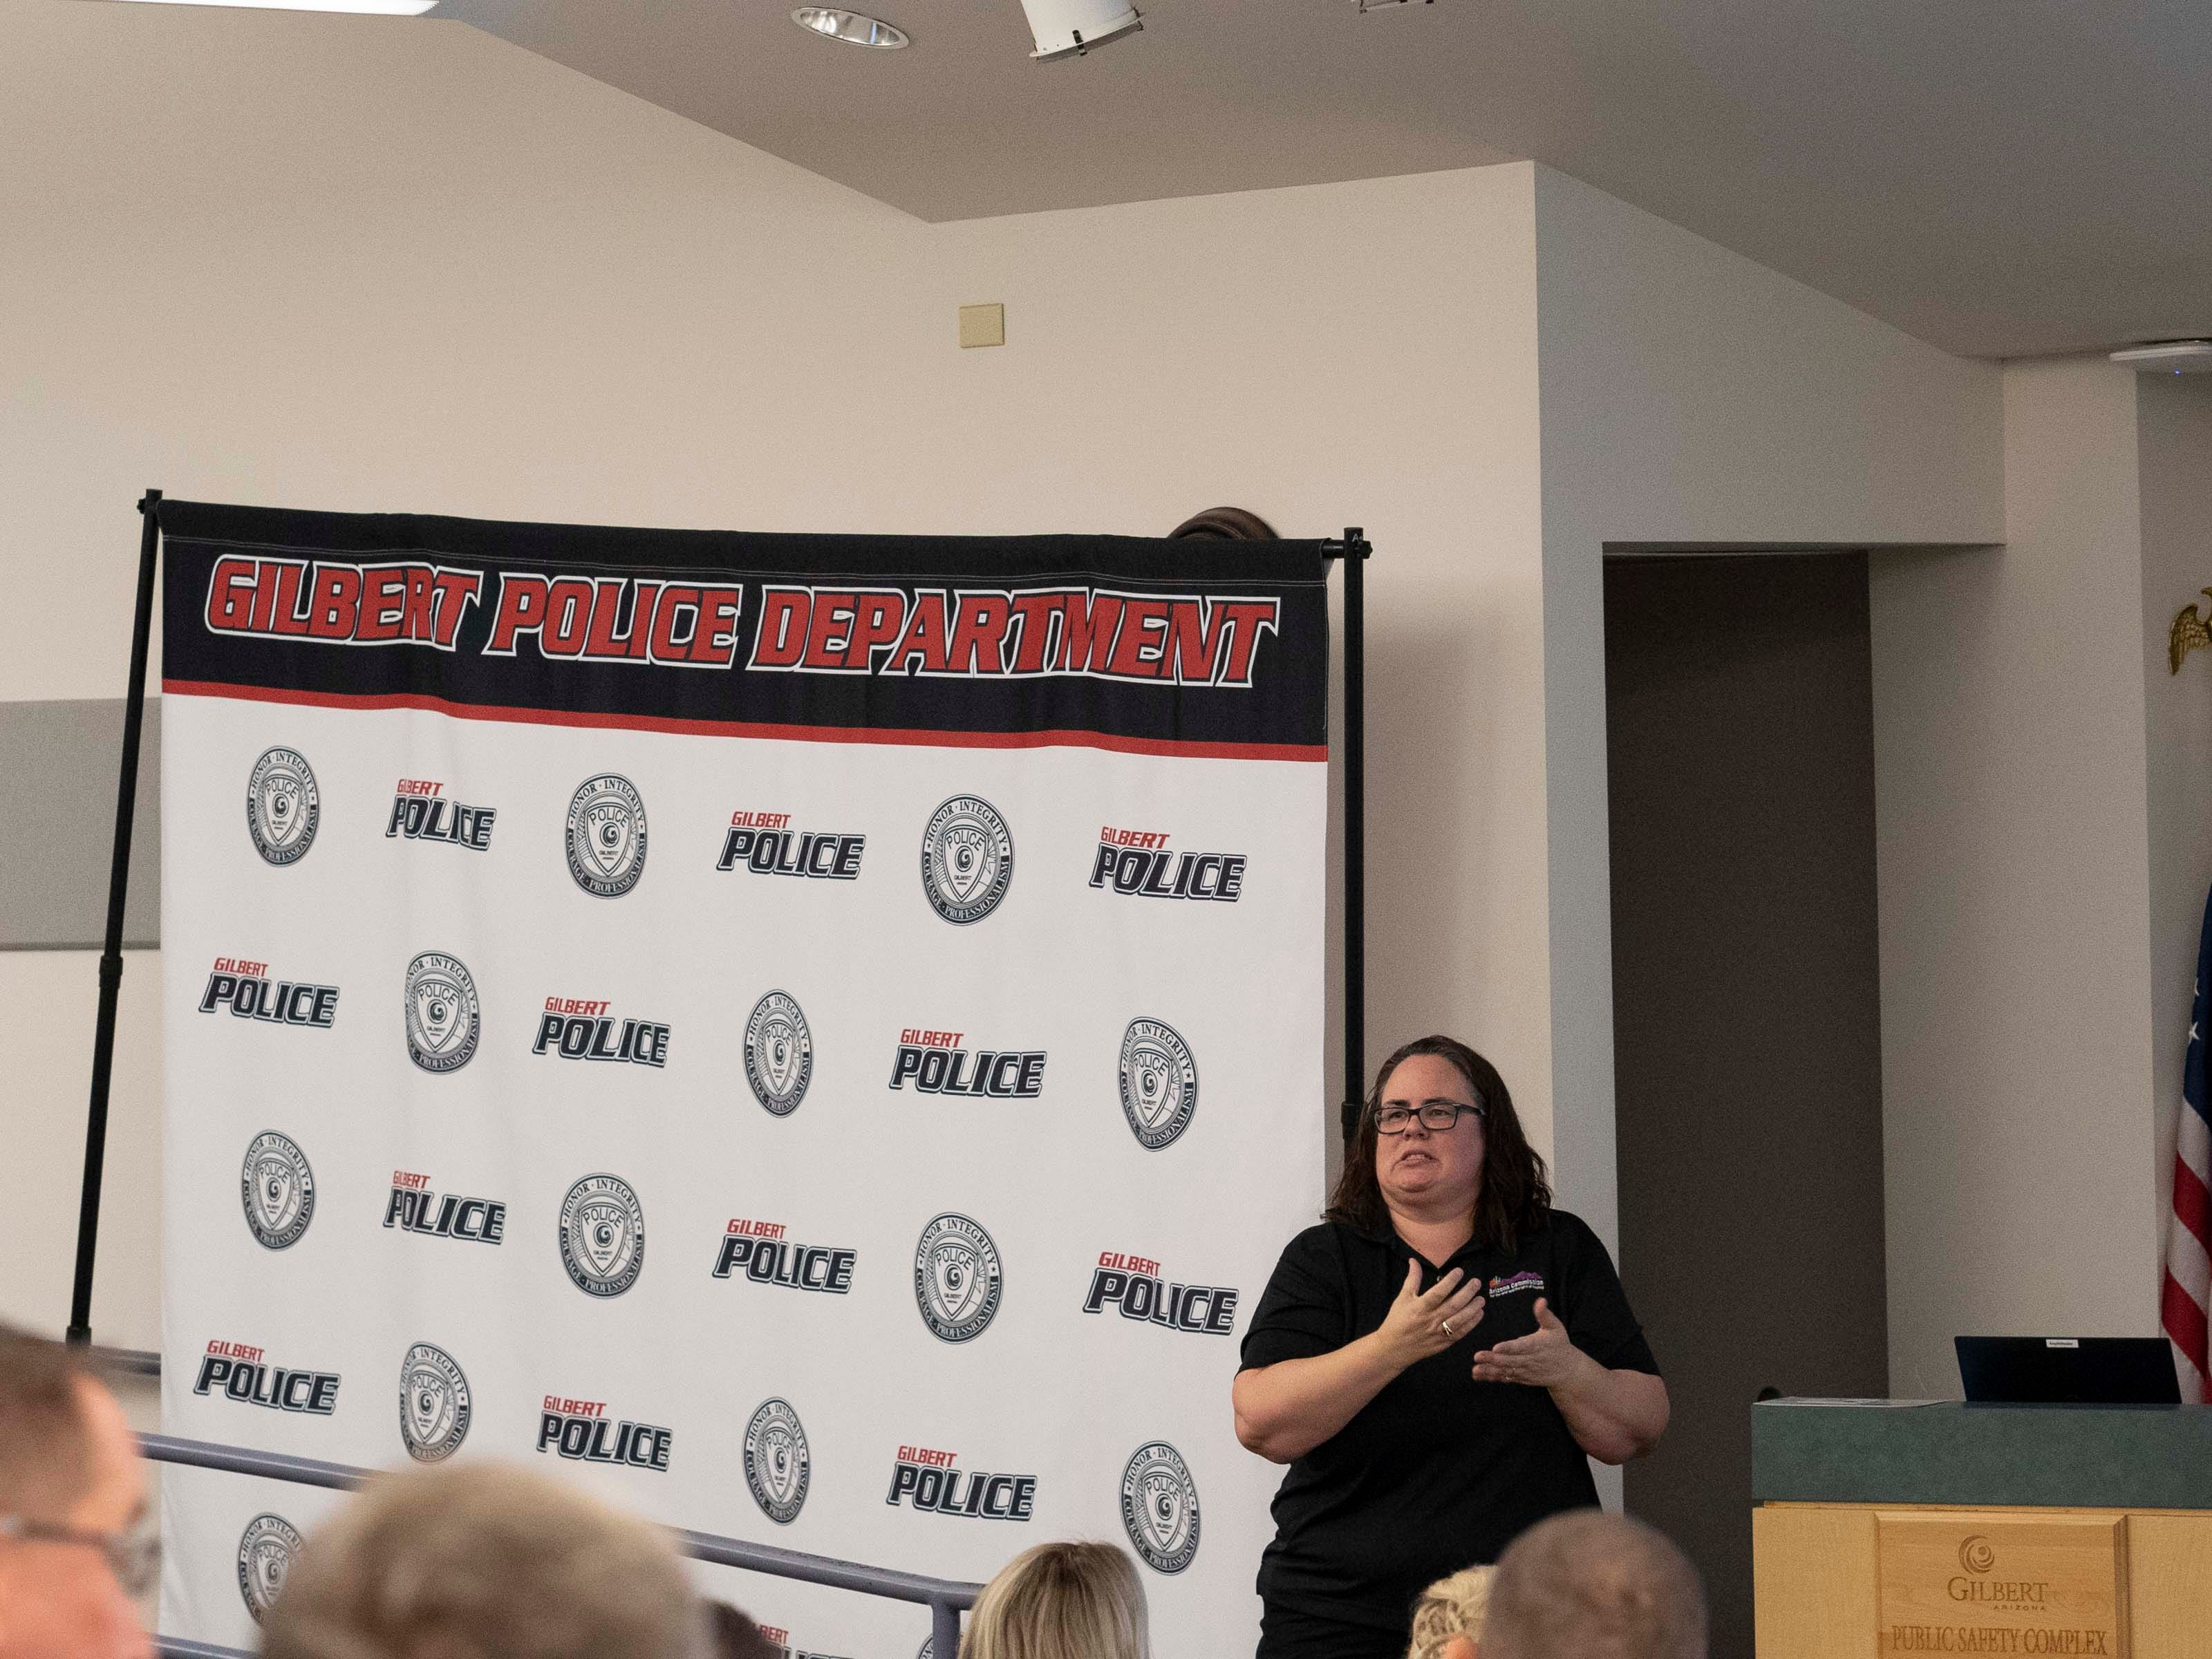 Beca Bailey, Community Engagement Liaison for Arizona Commission for the Deaf and Hard of Hearing, teaches Gilbert Police Department how to work with blind and deaf community.